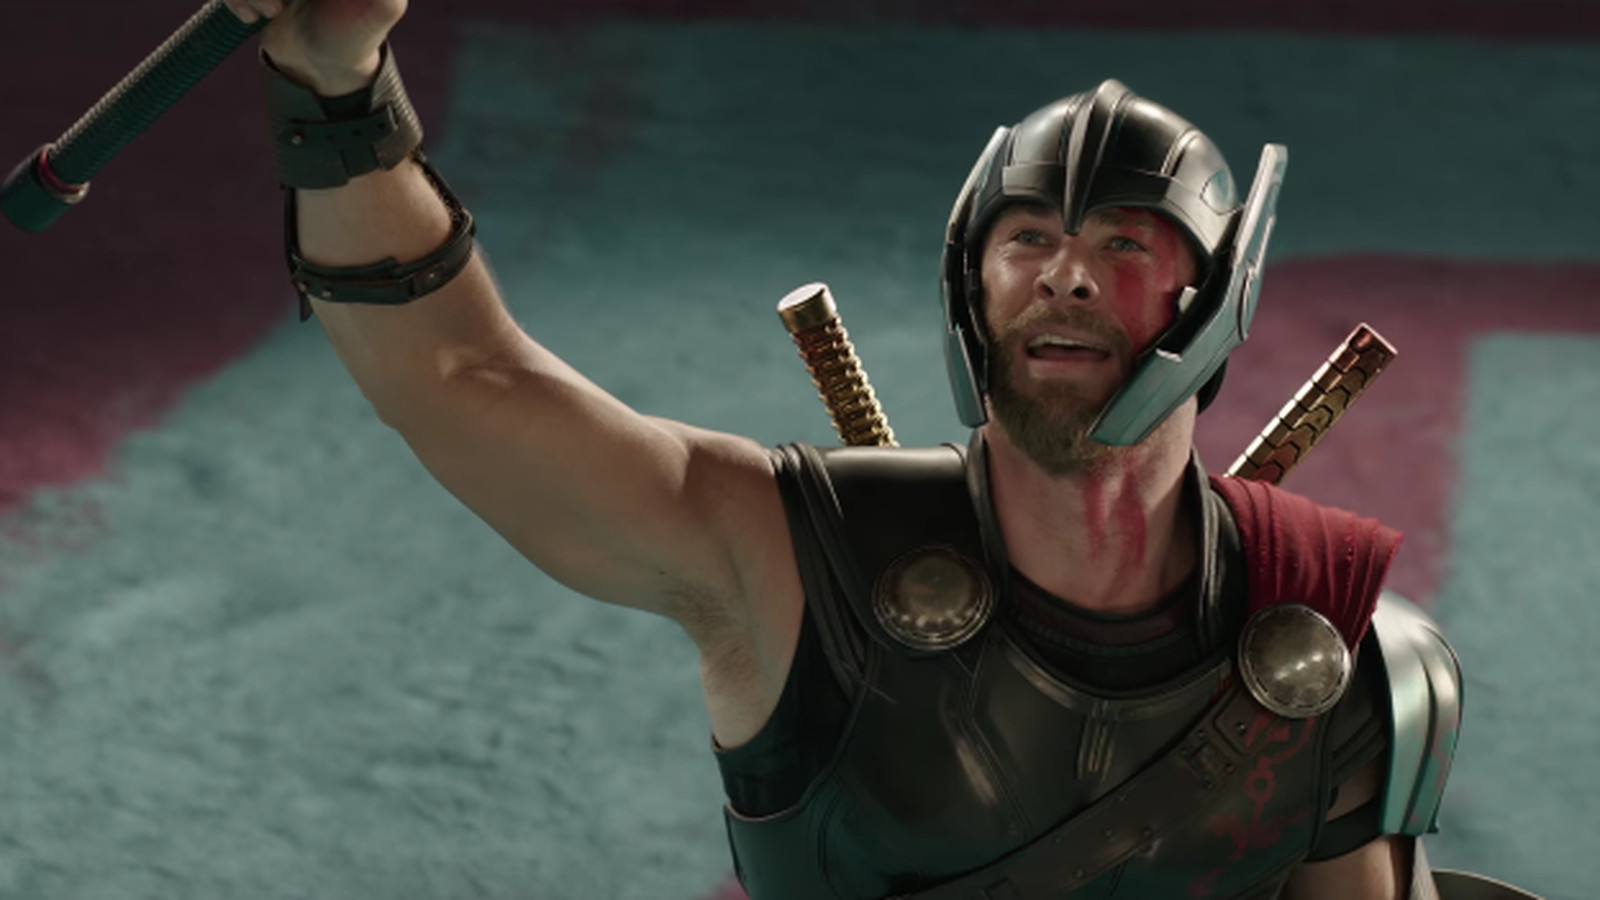 Thor: Ragnarok's trailer provides what the franchise was desperately missing: comedy